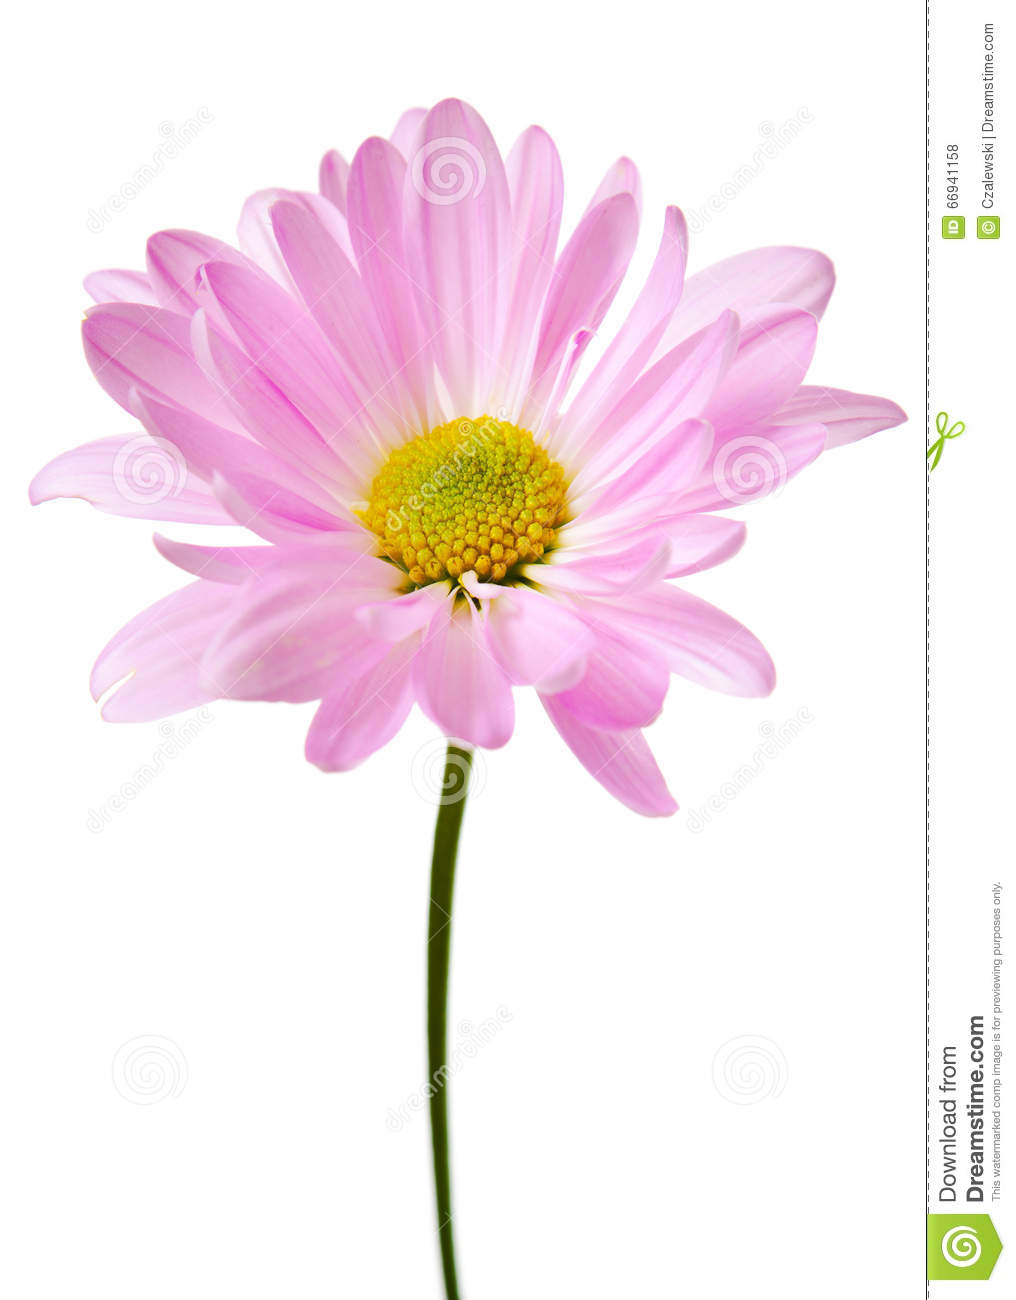 Purple Daisy Flower Daisies Floral Flowers Stock Photo Image Of